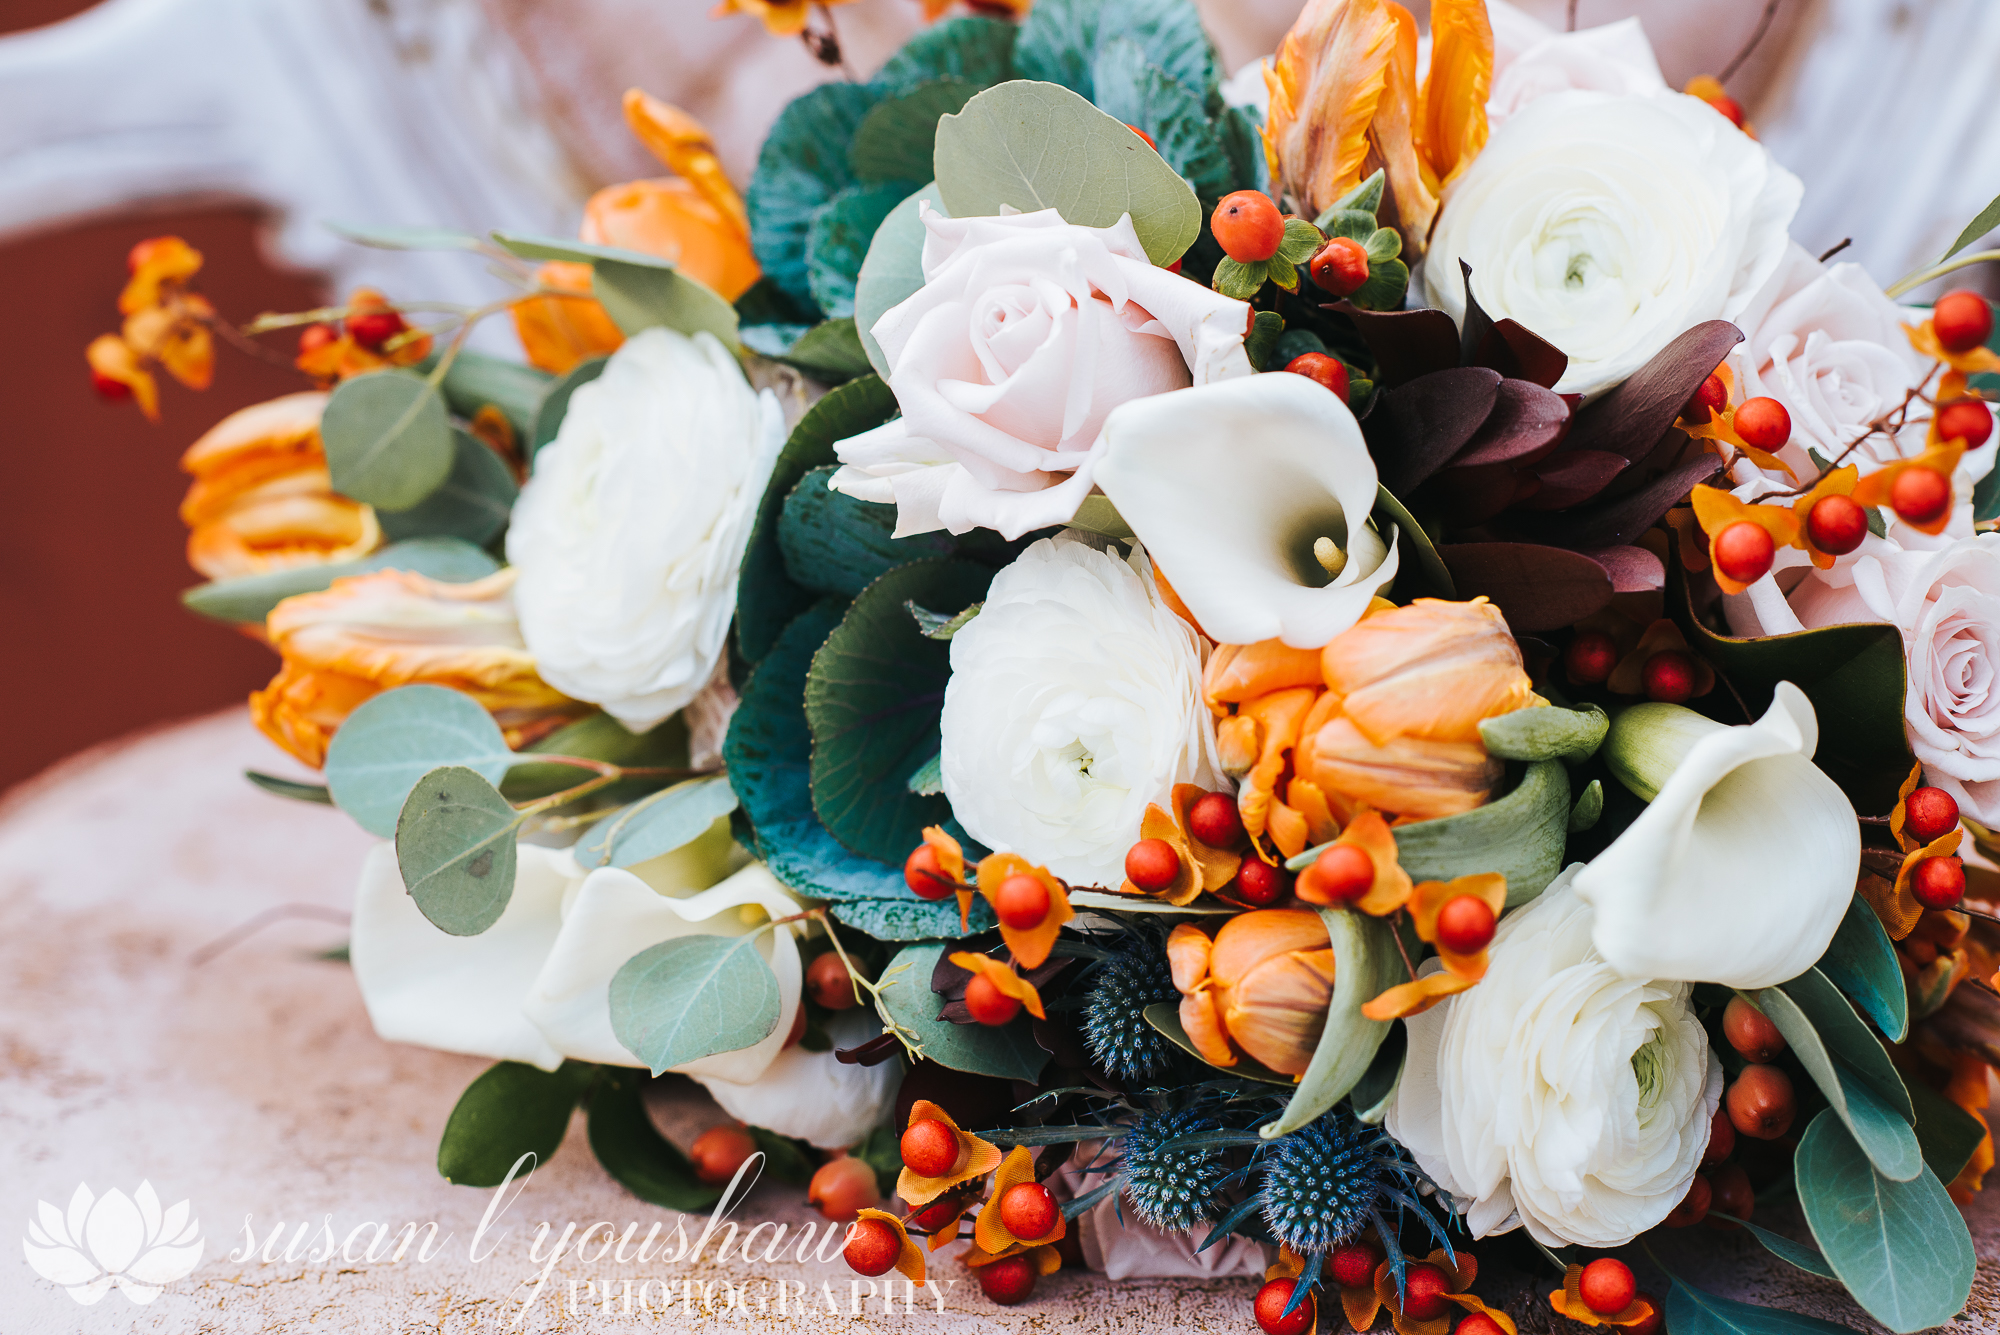 BLOG Love It LaVintage 10-21-2018 SLY Photography LLC-3.jpg